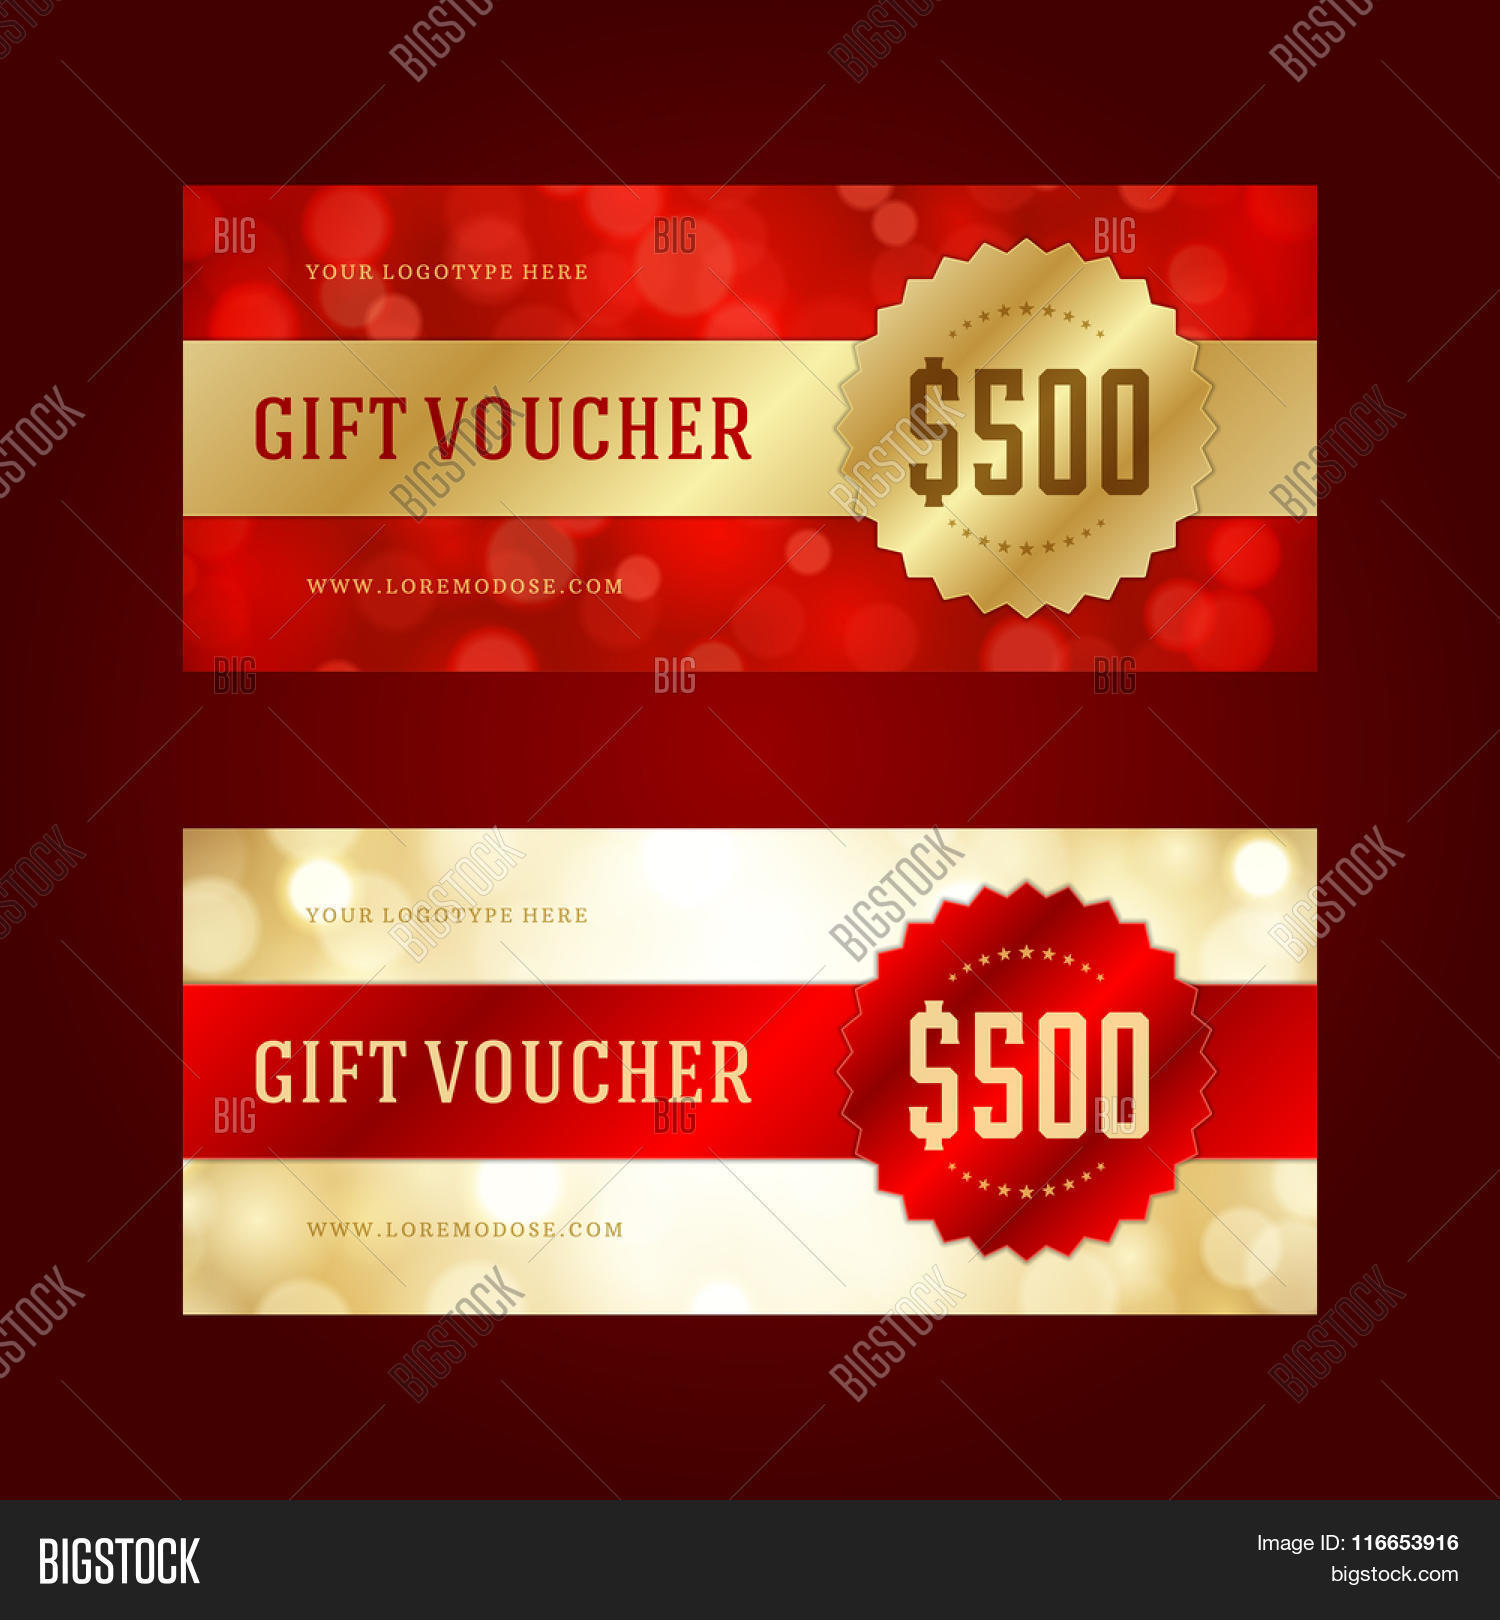 Gift voucher template design vector photo bigstock gift voucher template design and vintage style vector illustration voucher vector voucher template yadclub Images